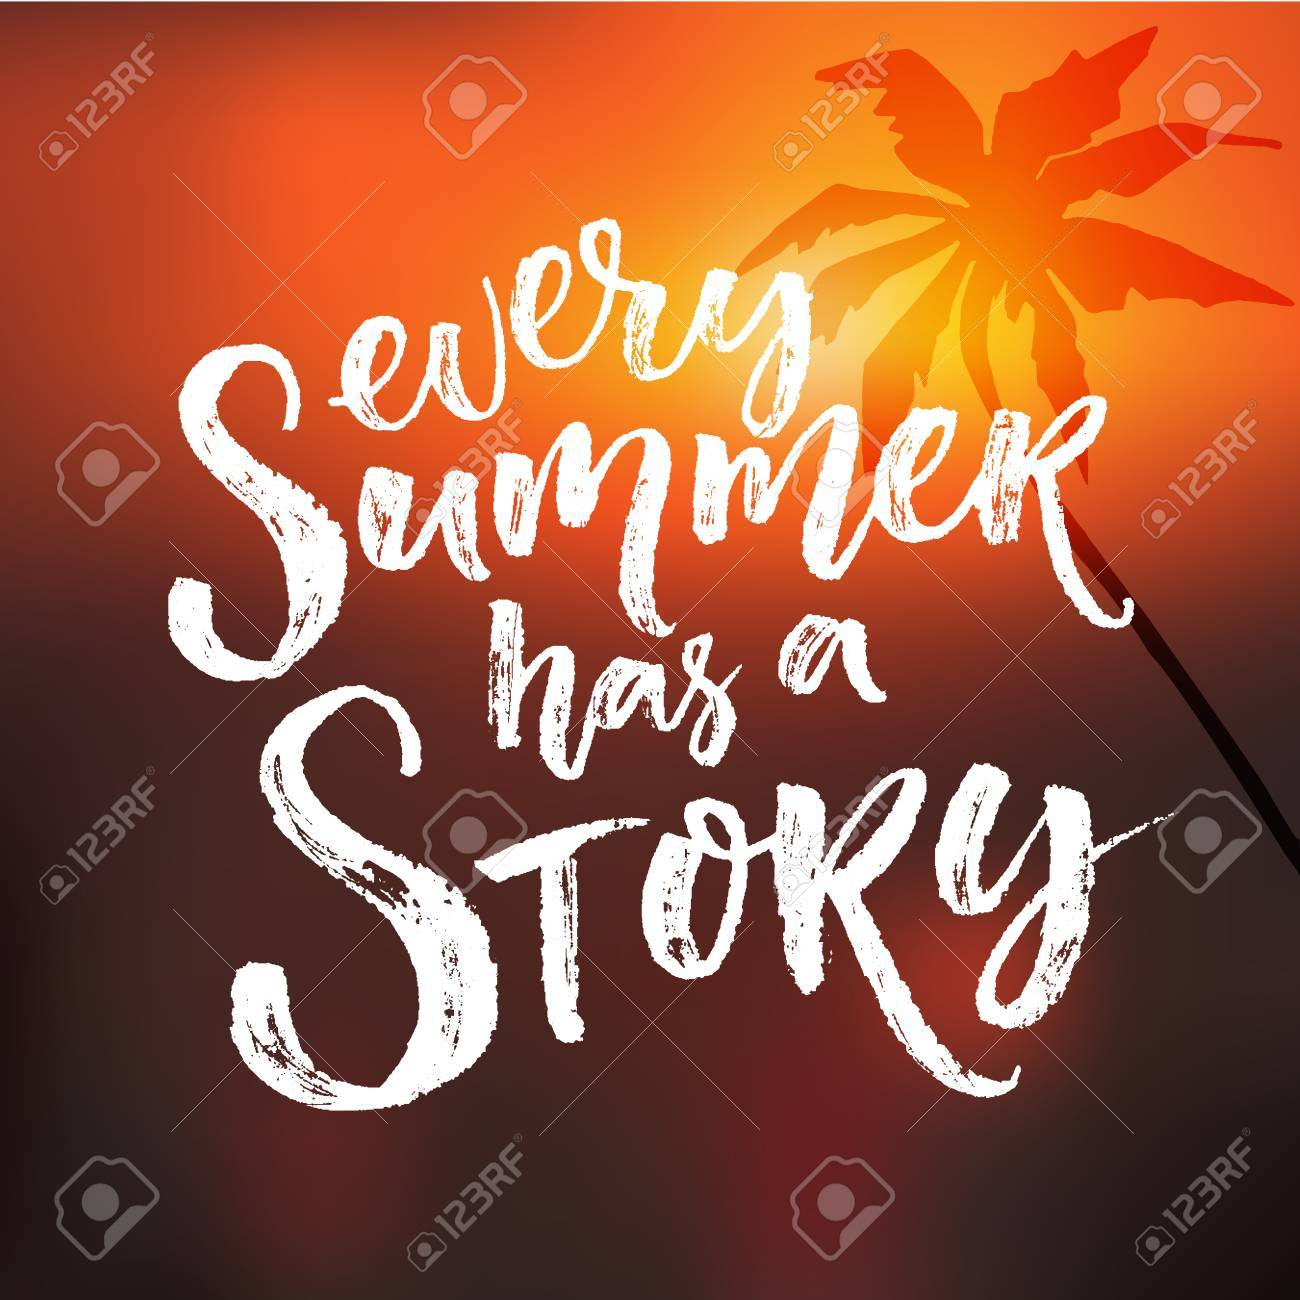 Superb Every Summer Has A Story. Inspiration Quote At Blur Sunset Background With  Palm Tree Silhouette